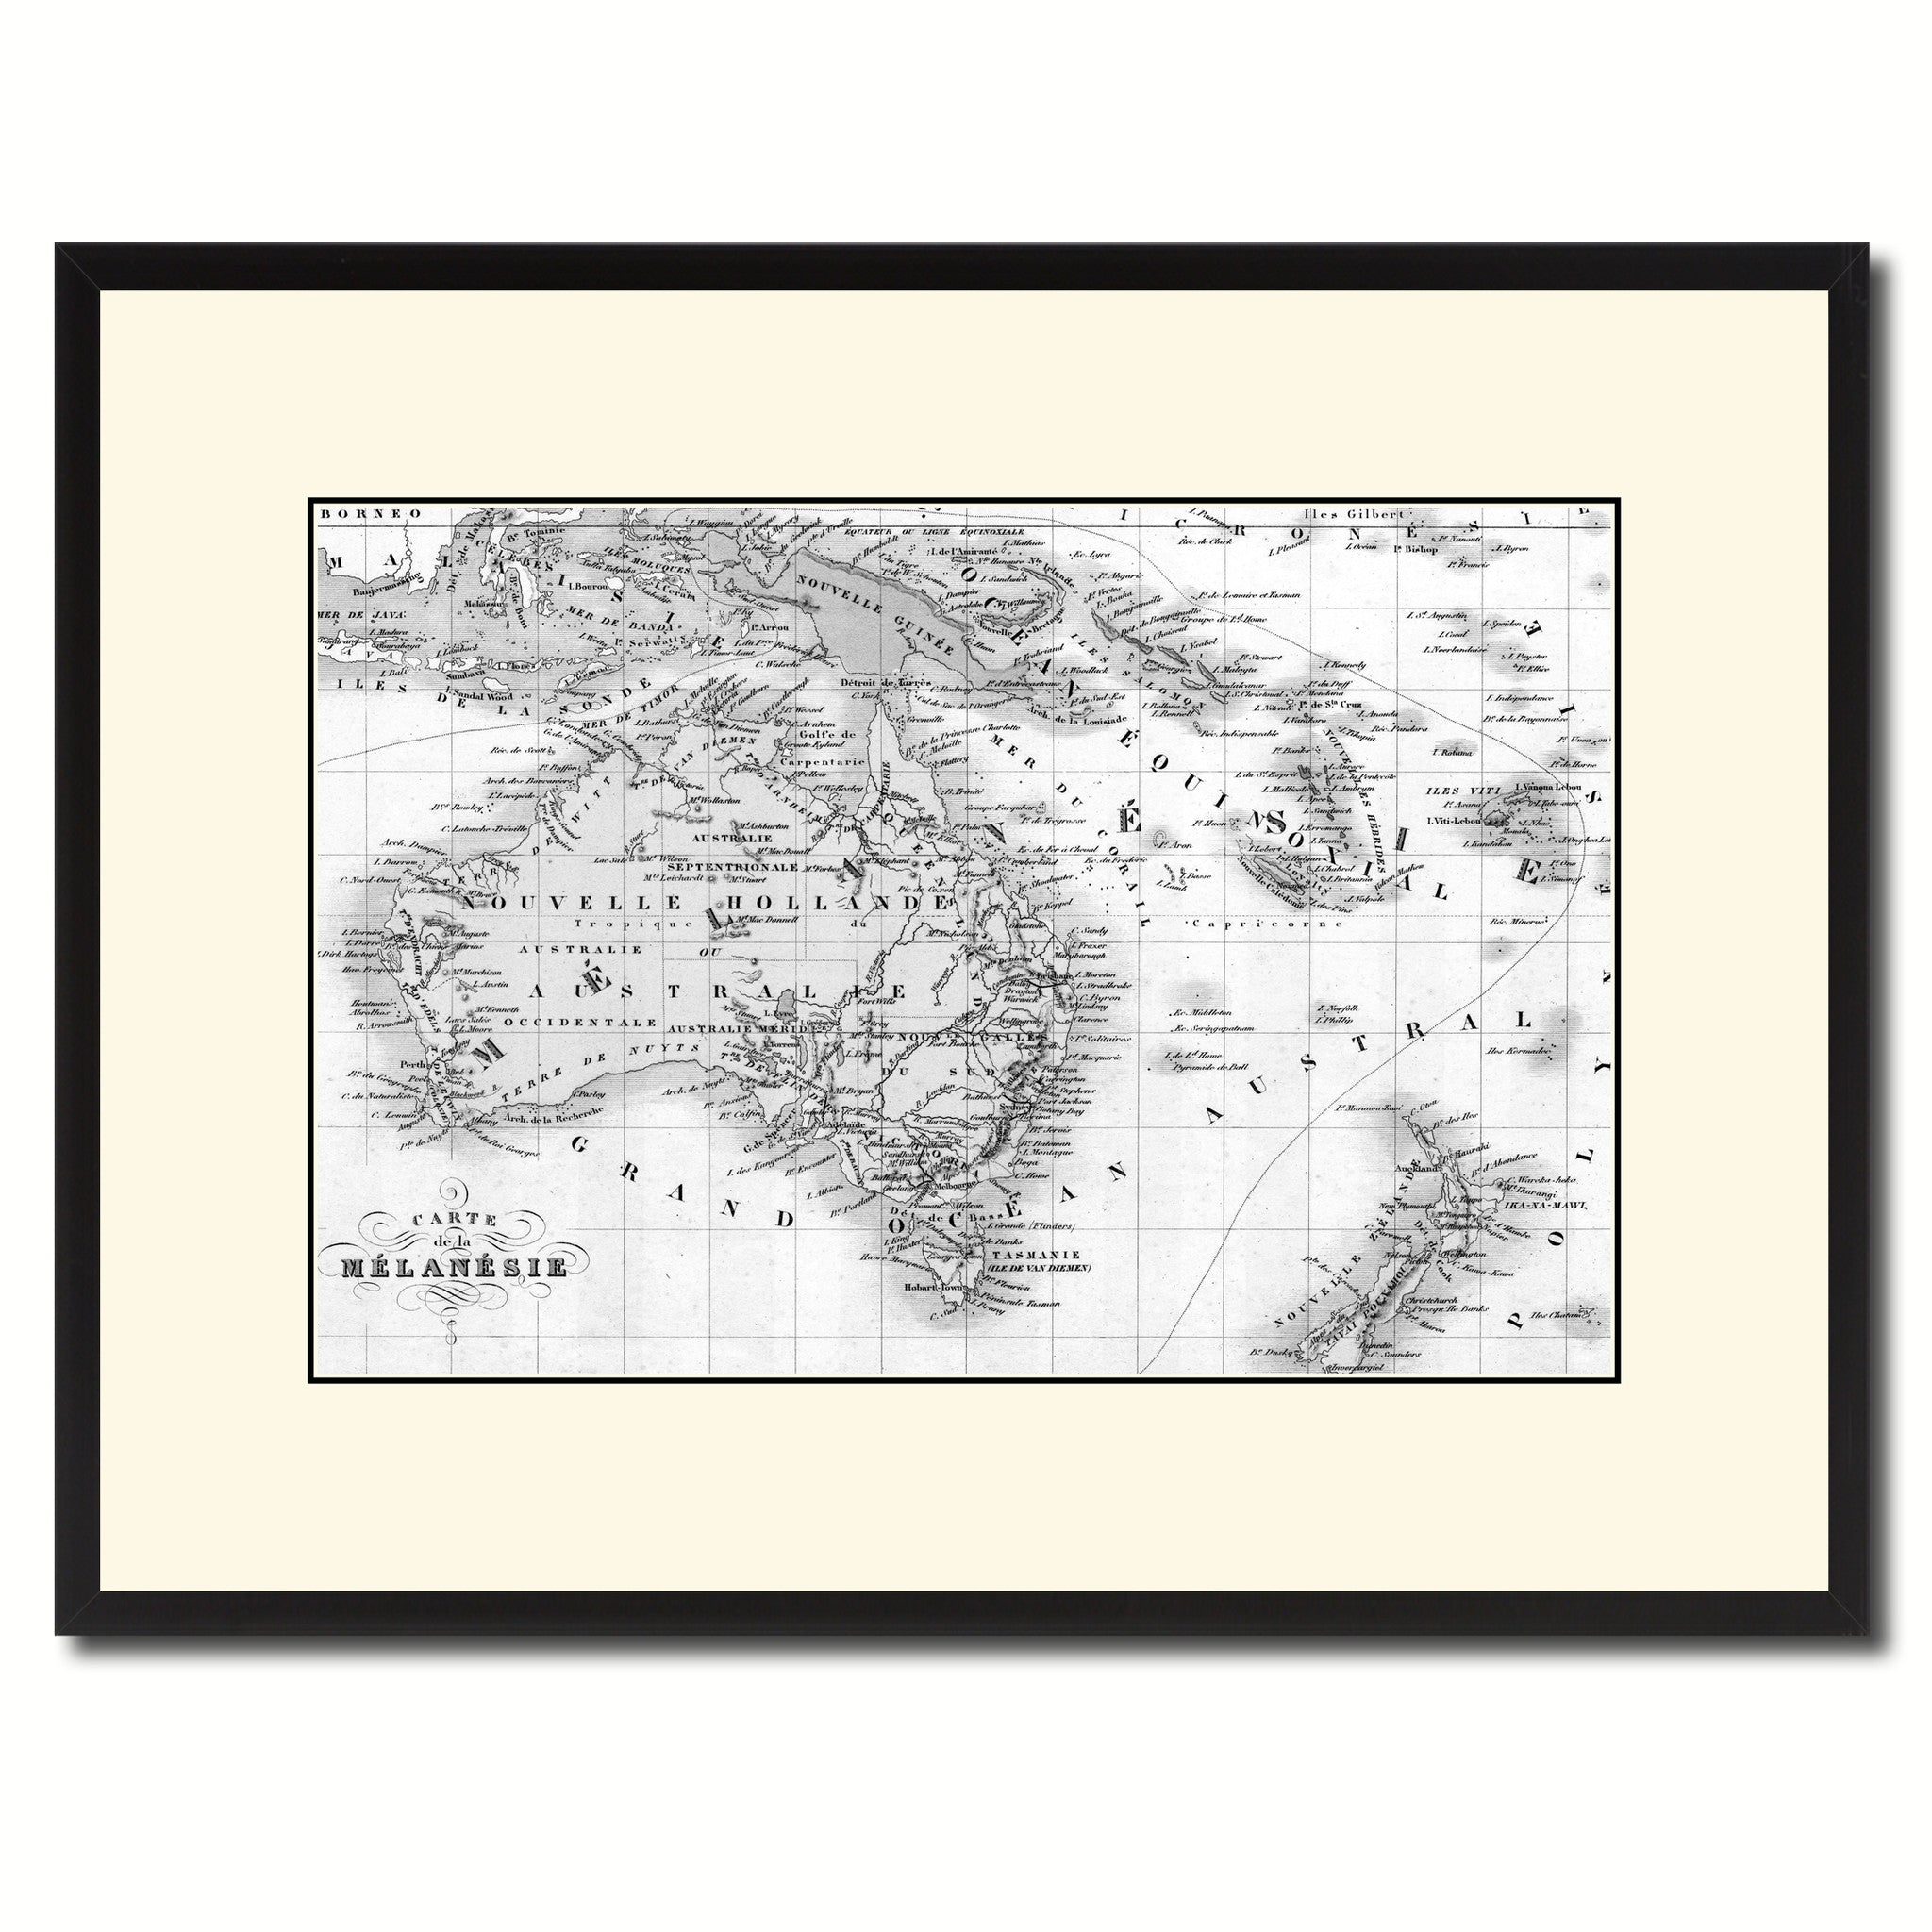 New Zealand Oceania Australia Vintage B&W Map Canvas Print, Picture Frame Home Decor Wall Art Gift Ideas